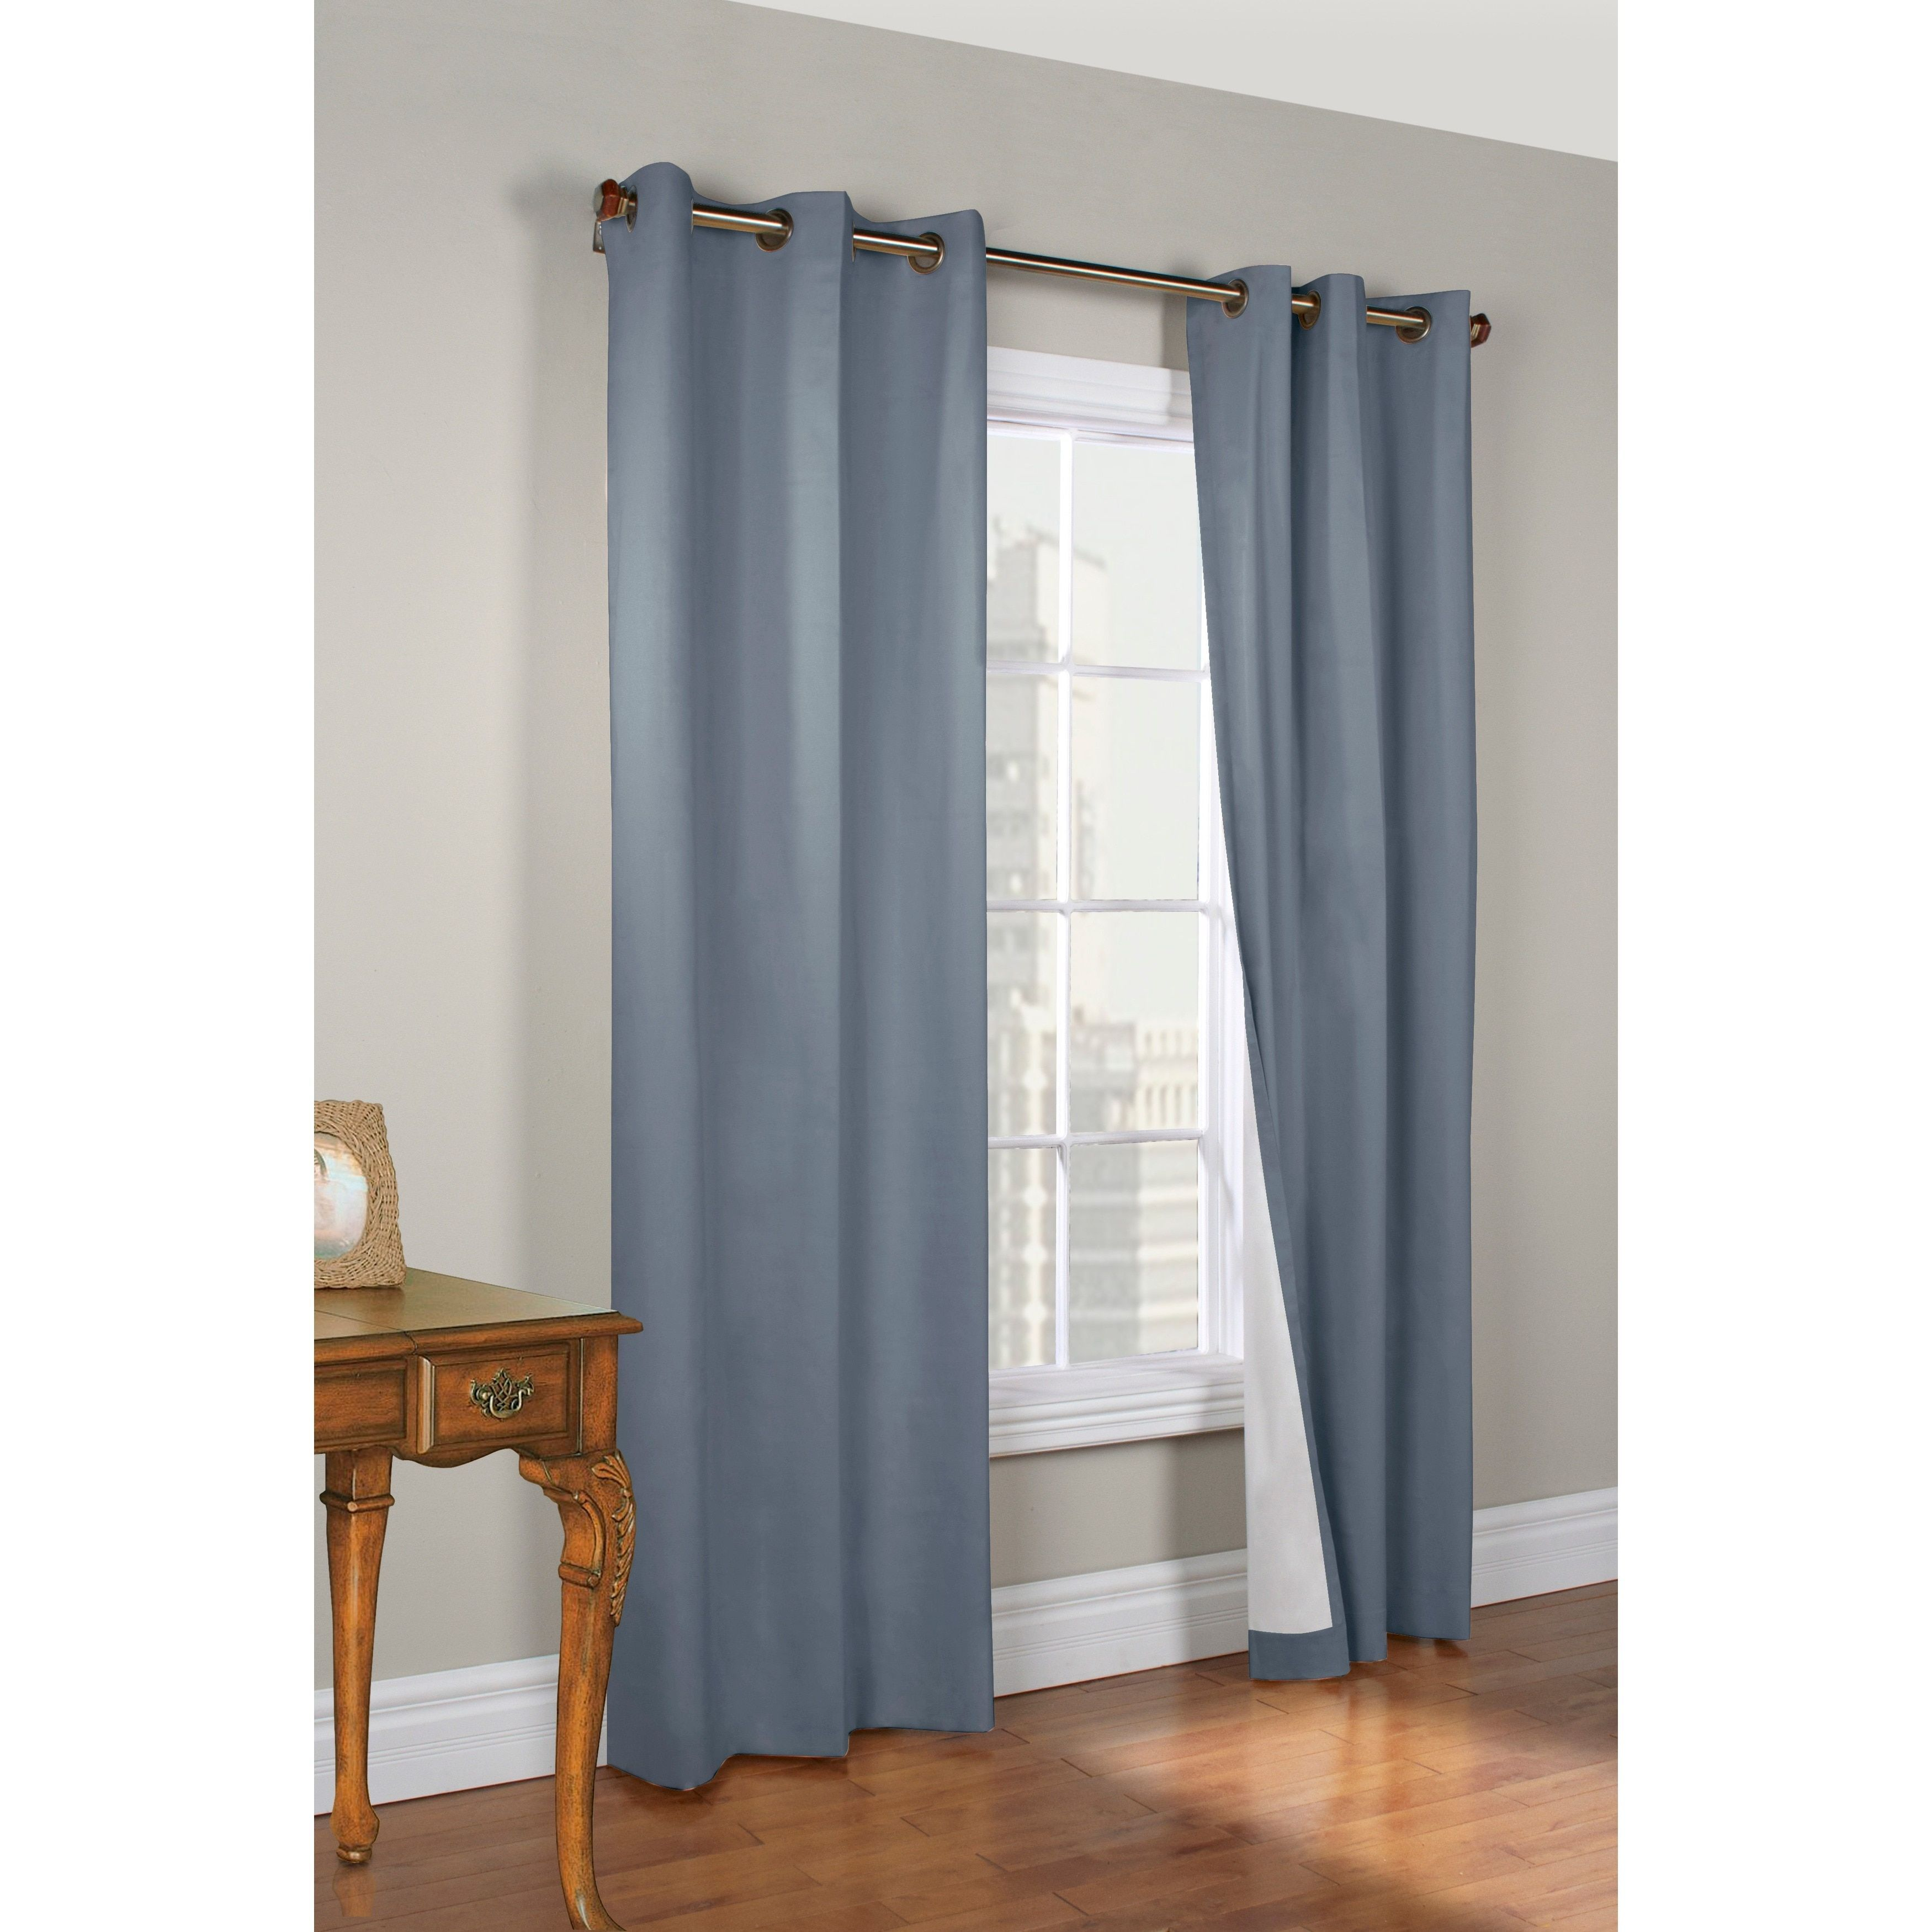 Thermalogic Weathermate Insulated 63 Inch Curtain Panel Pair